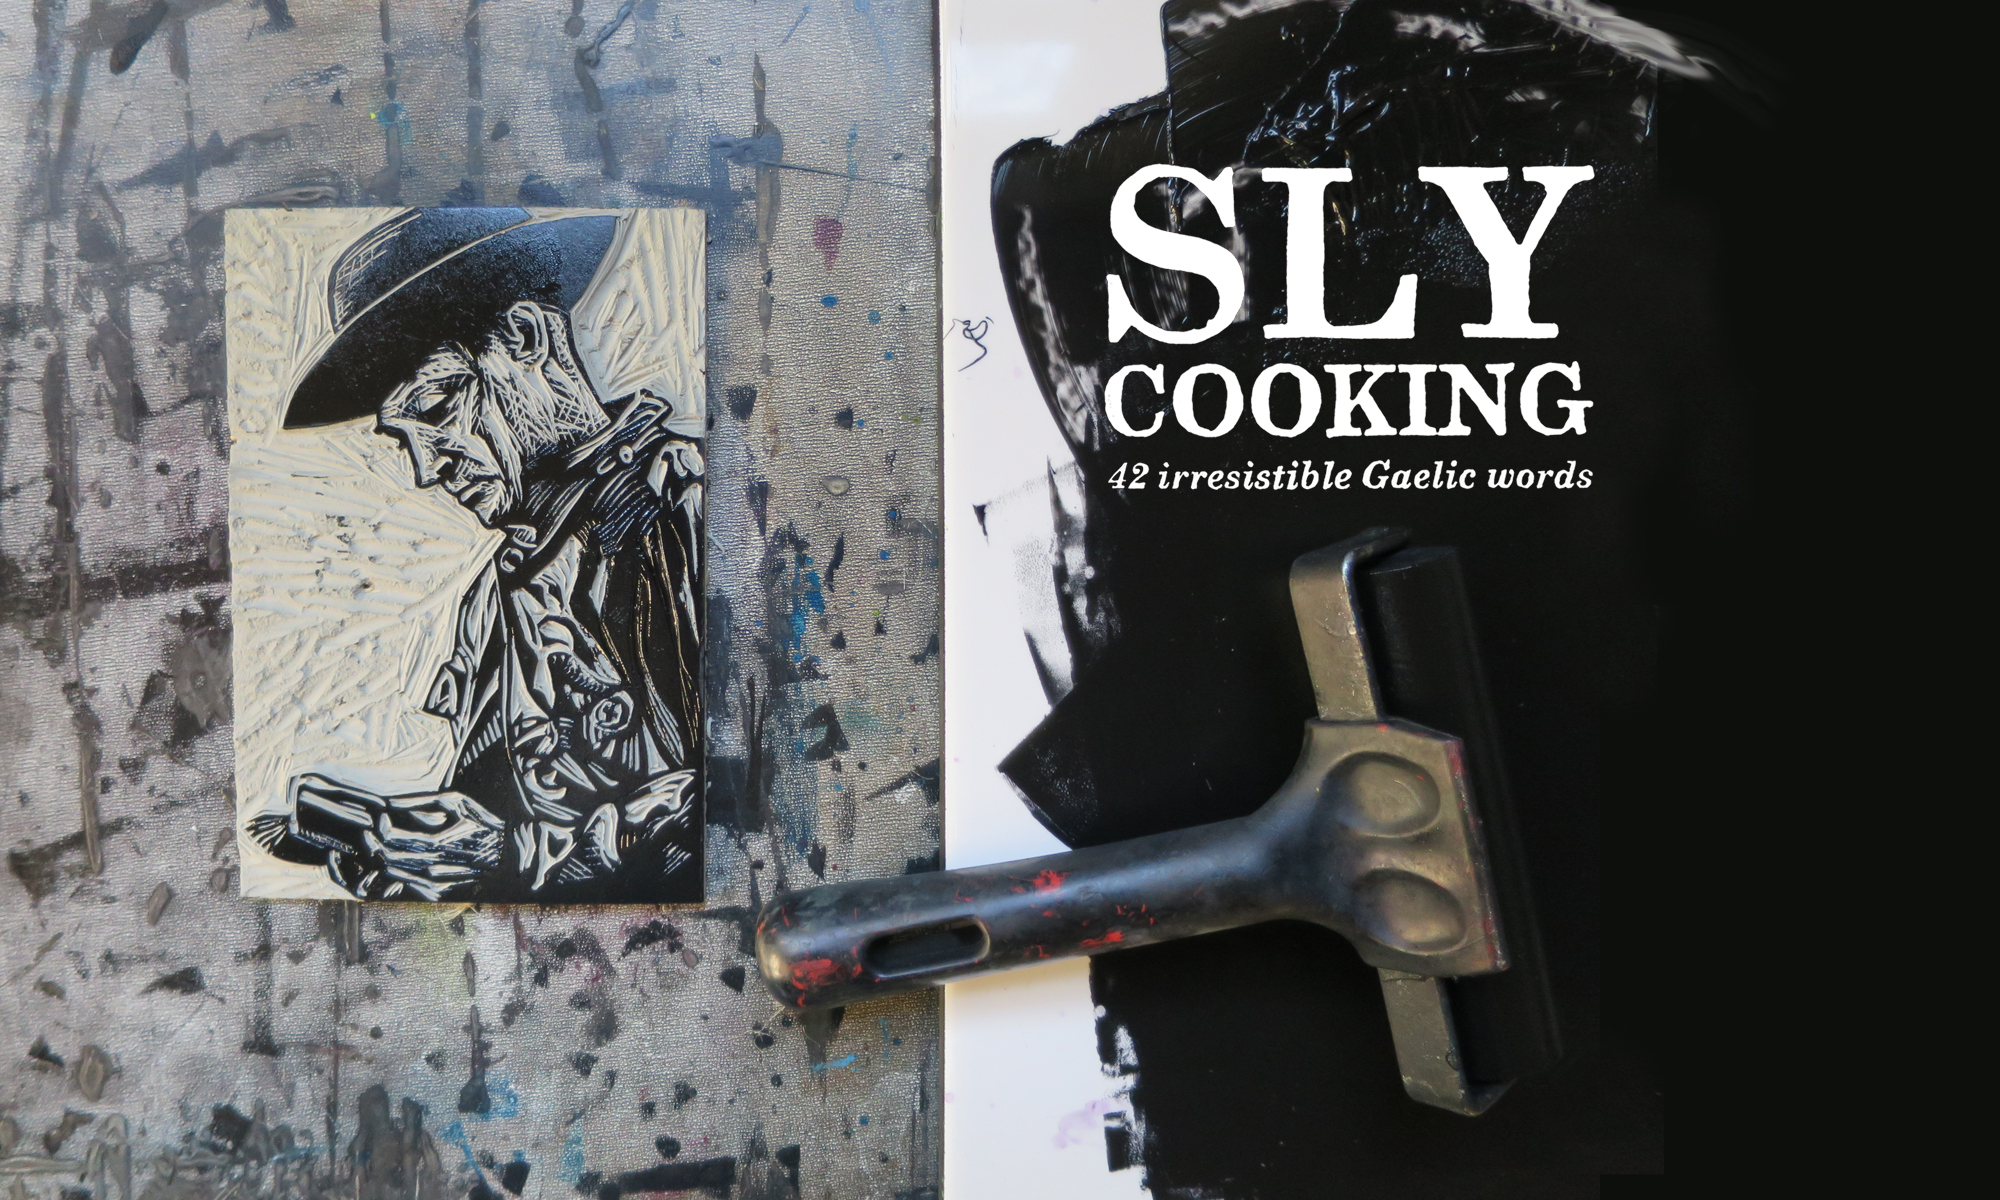 Sly Cooking